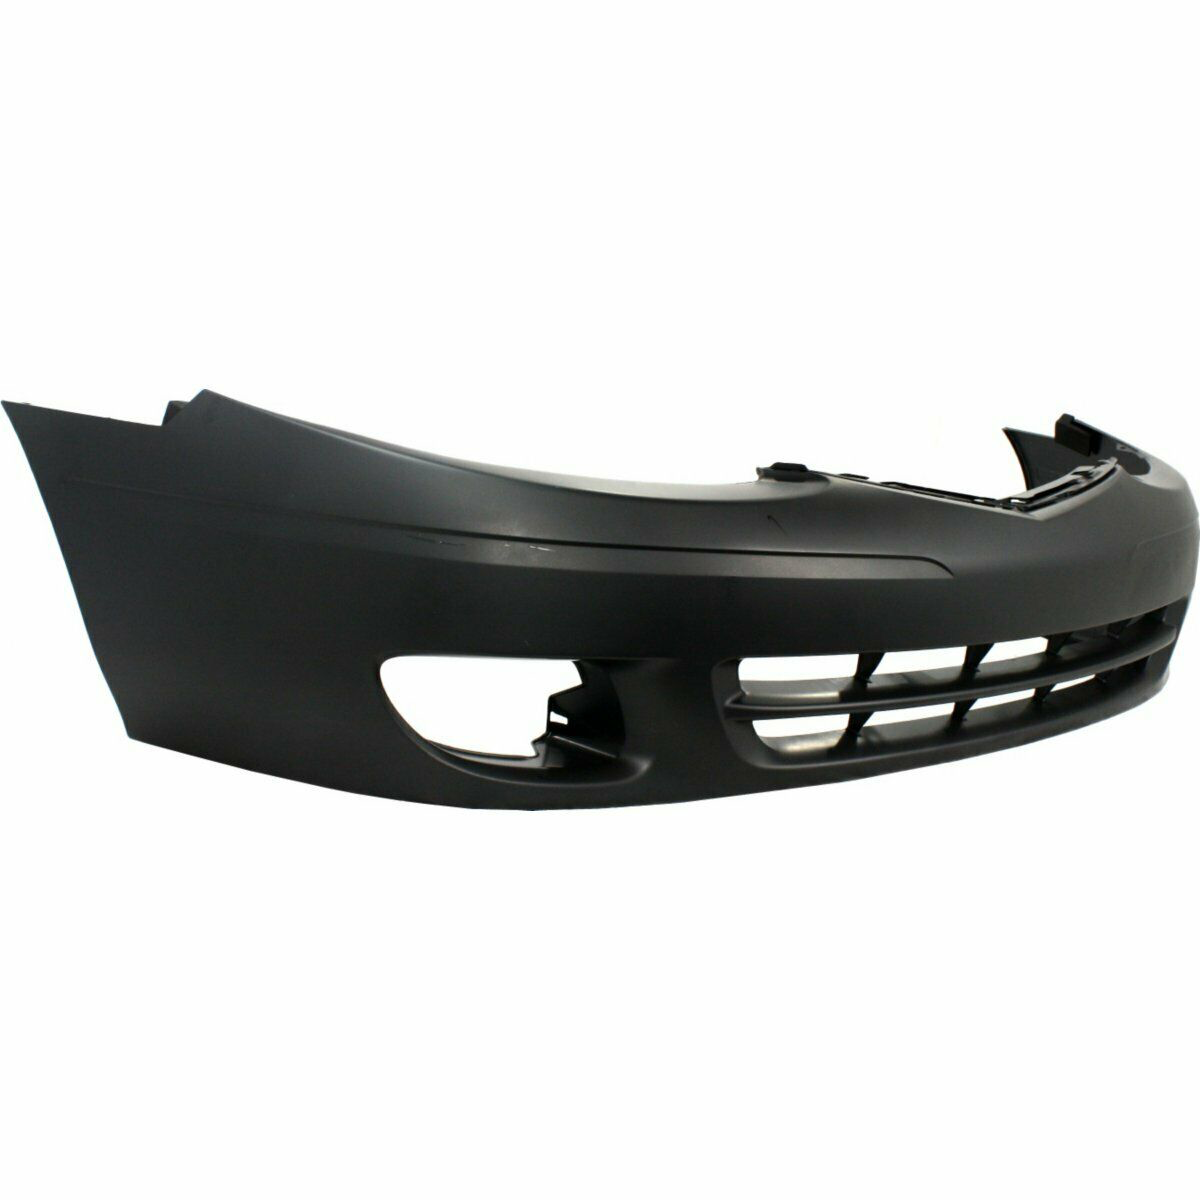 1999-2001 Toyota Solara Front Bumper Painted to Match